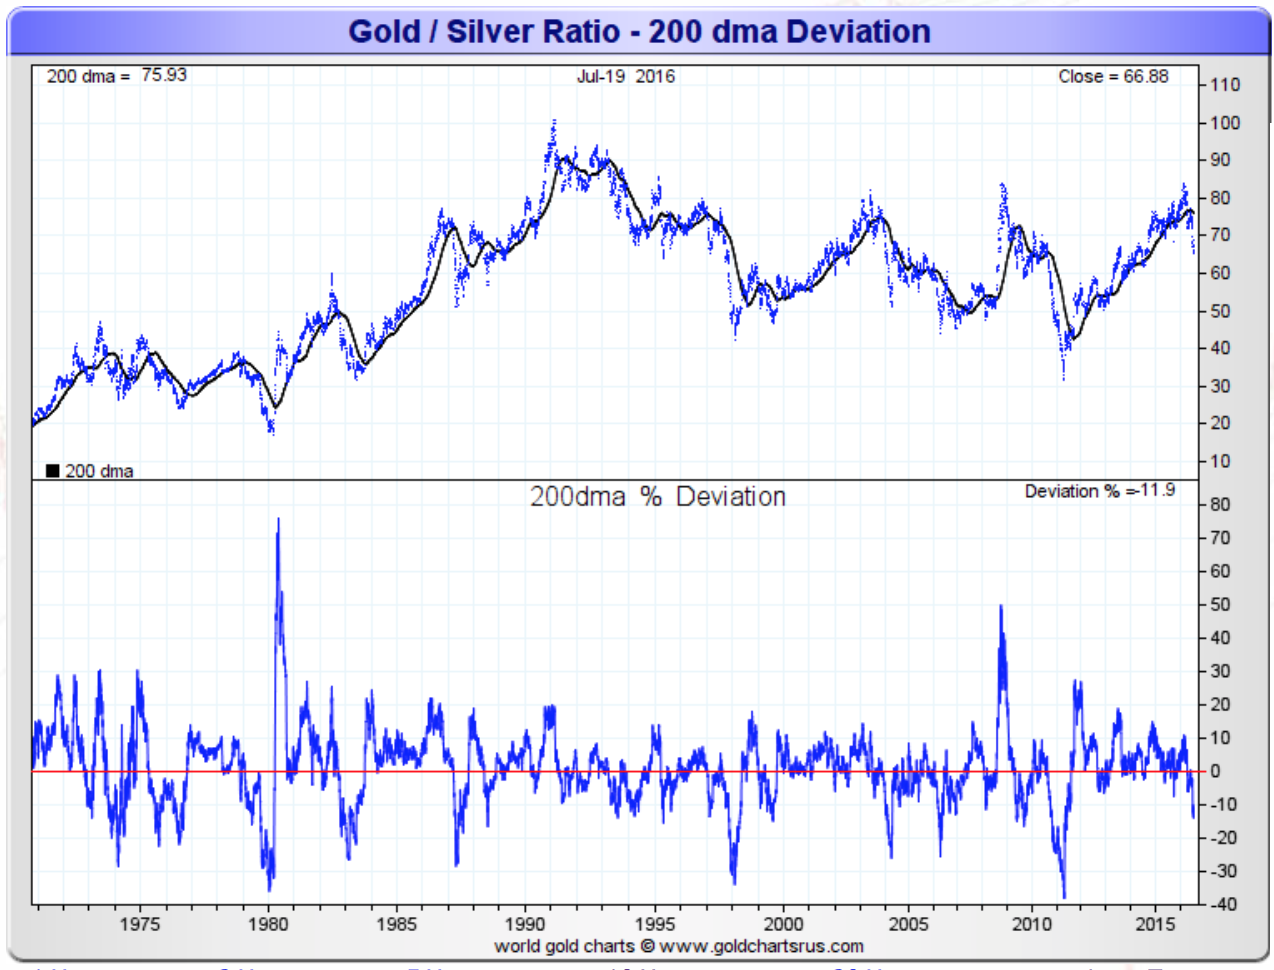 Gold/Silver ratio - 200 dma deviation